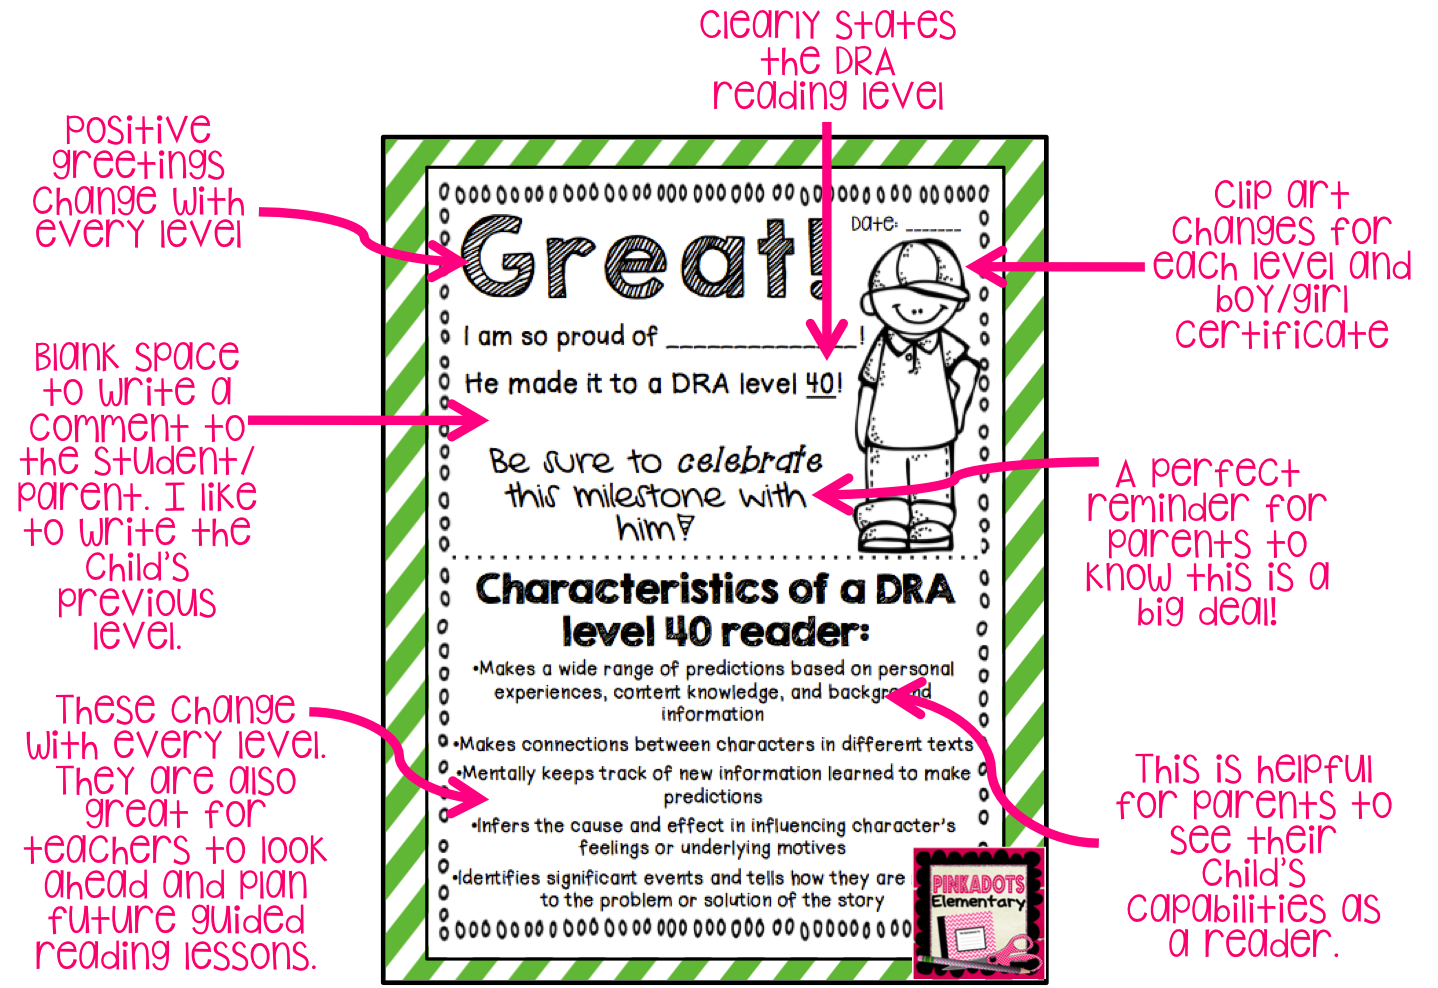 Fun And Meaningful Dra Reading Certificates For Parent